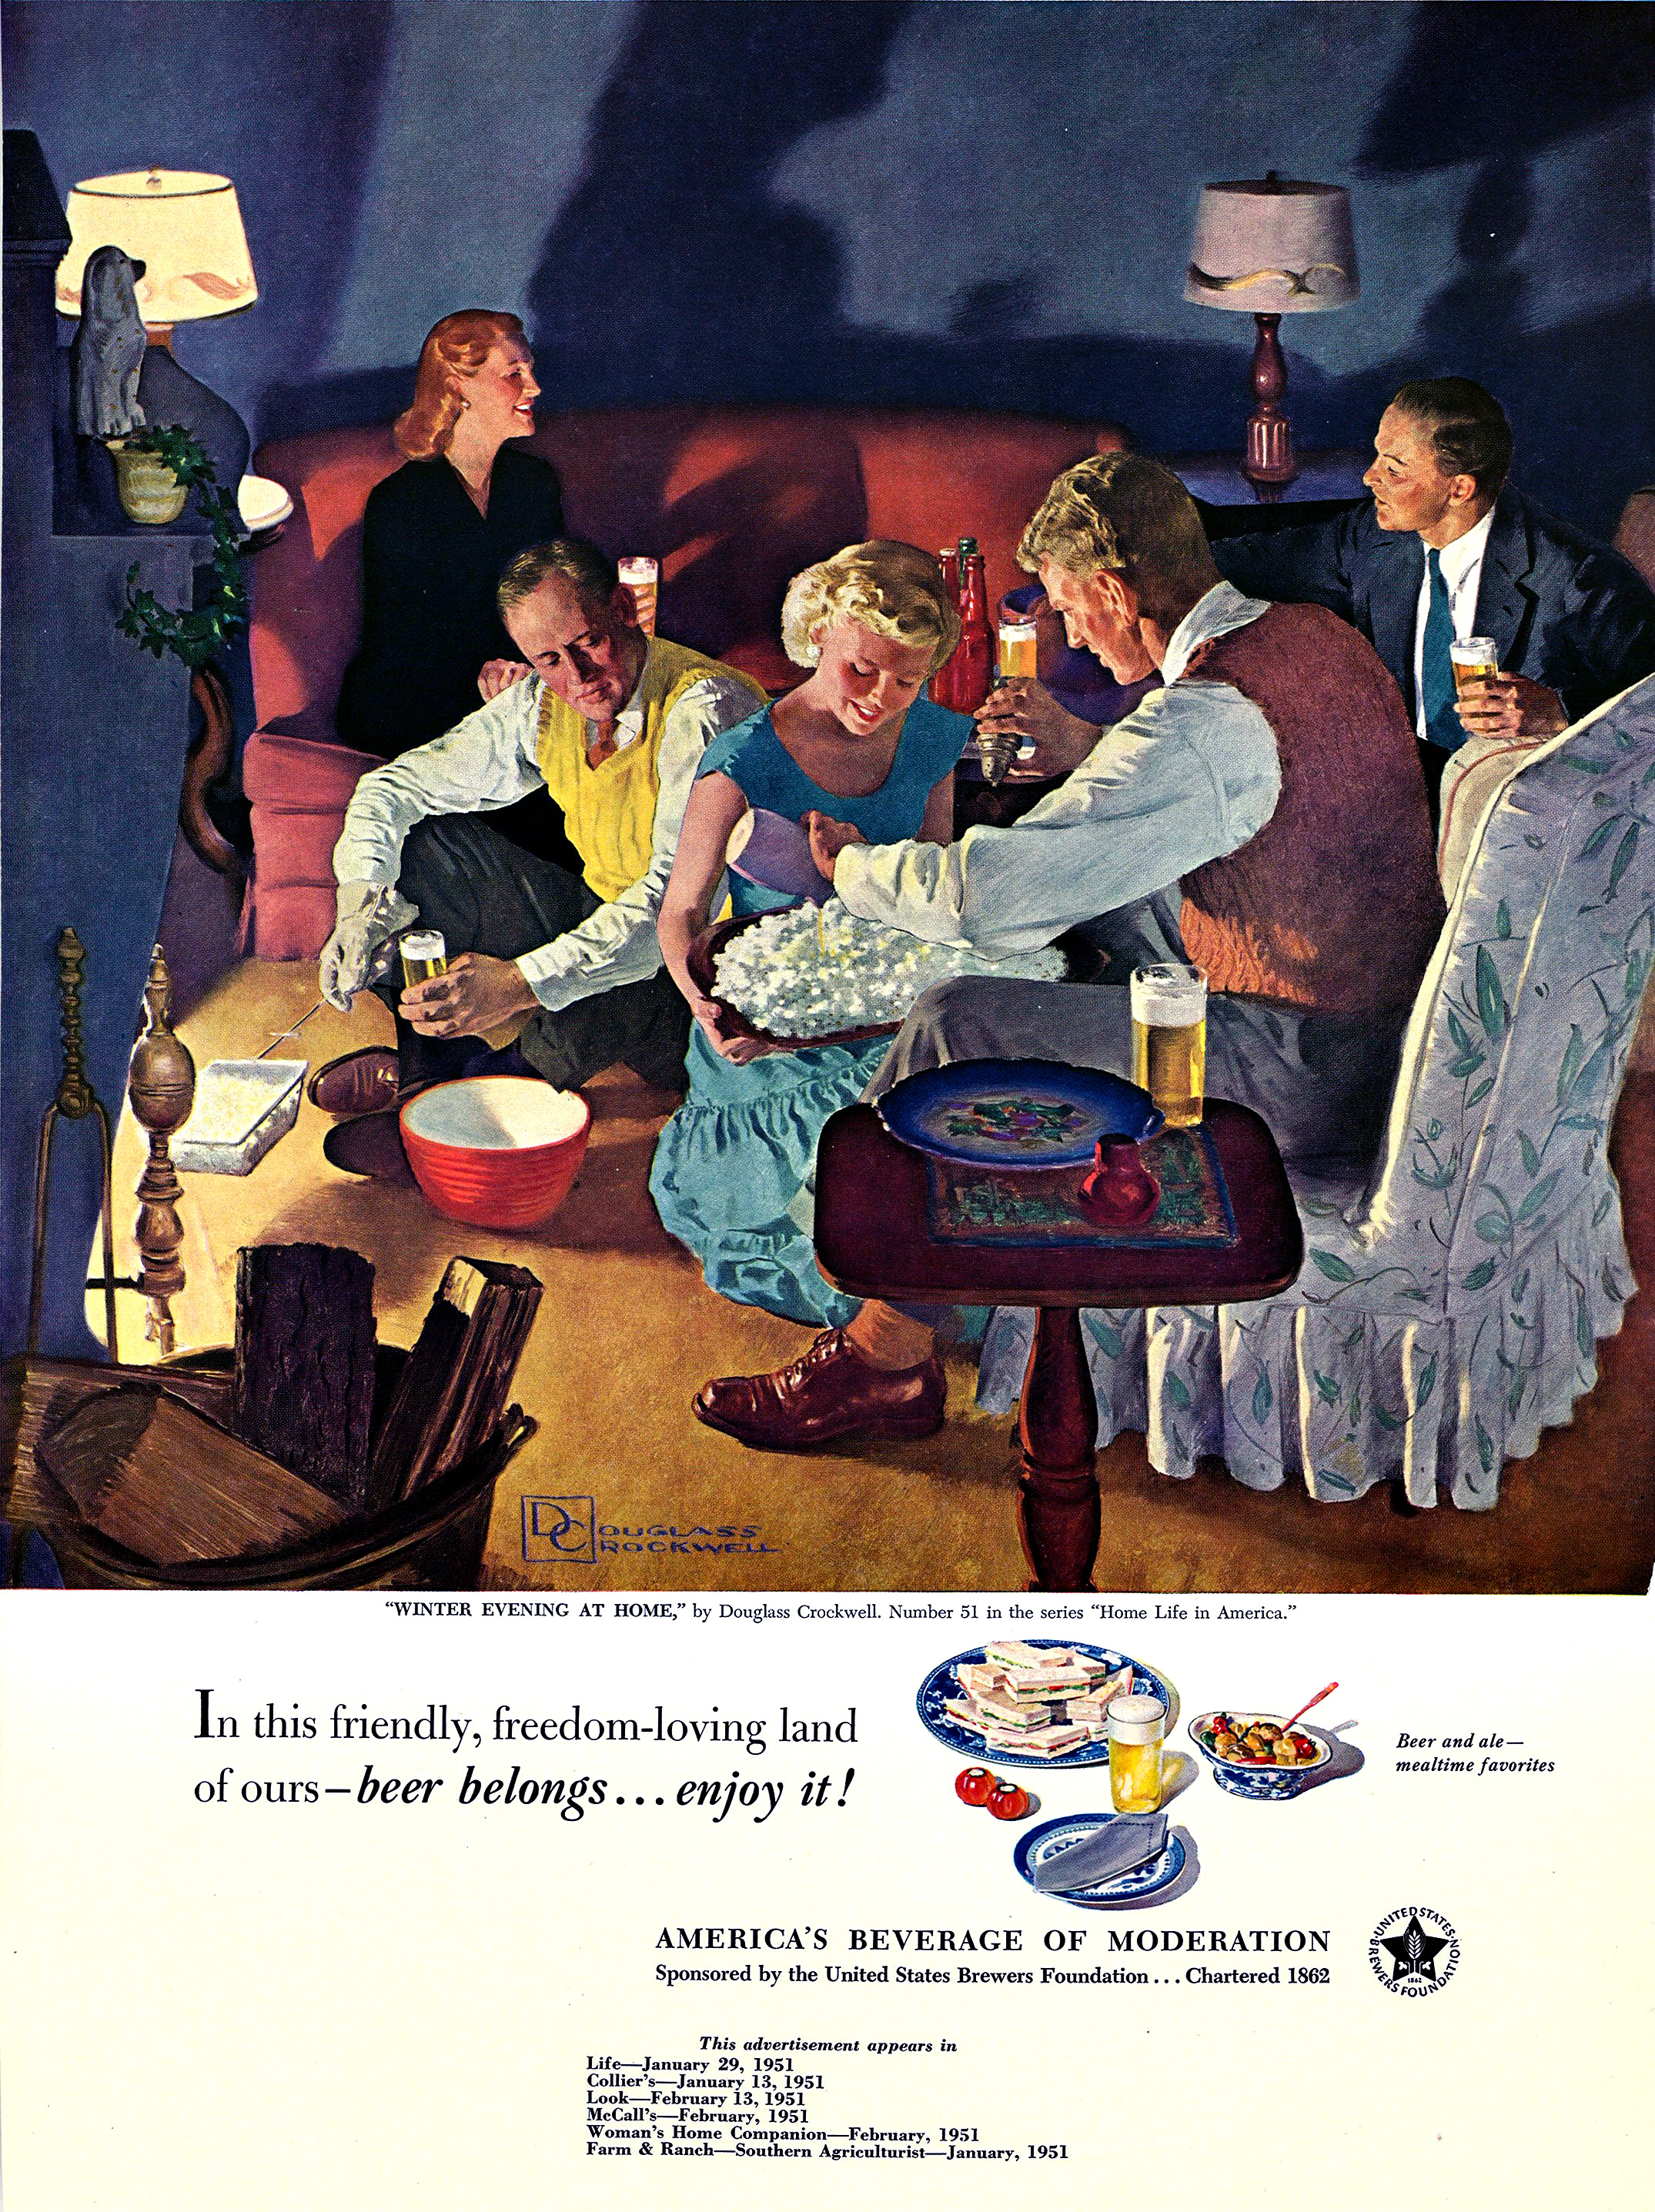 http://moviecollectoroh.com/pics_to_hotlink_on_TCM/Winter Evening at Home by Douglass Crockwell, 1951.jpg